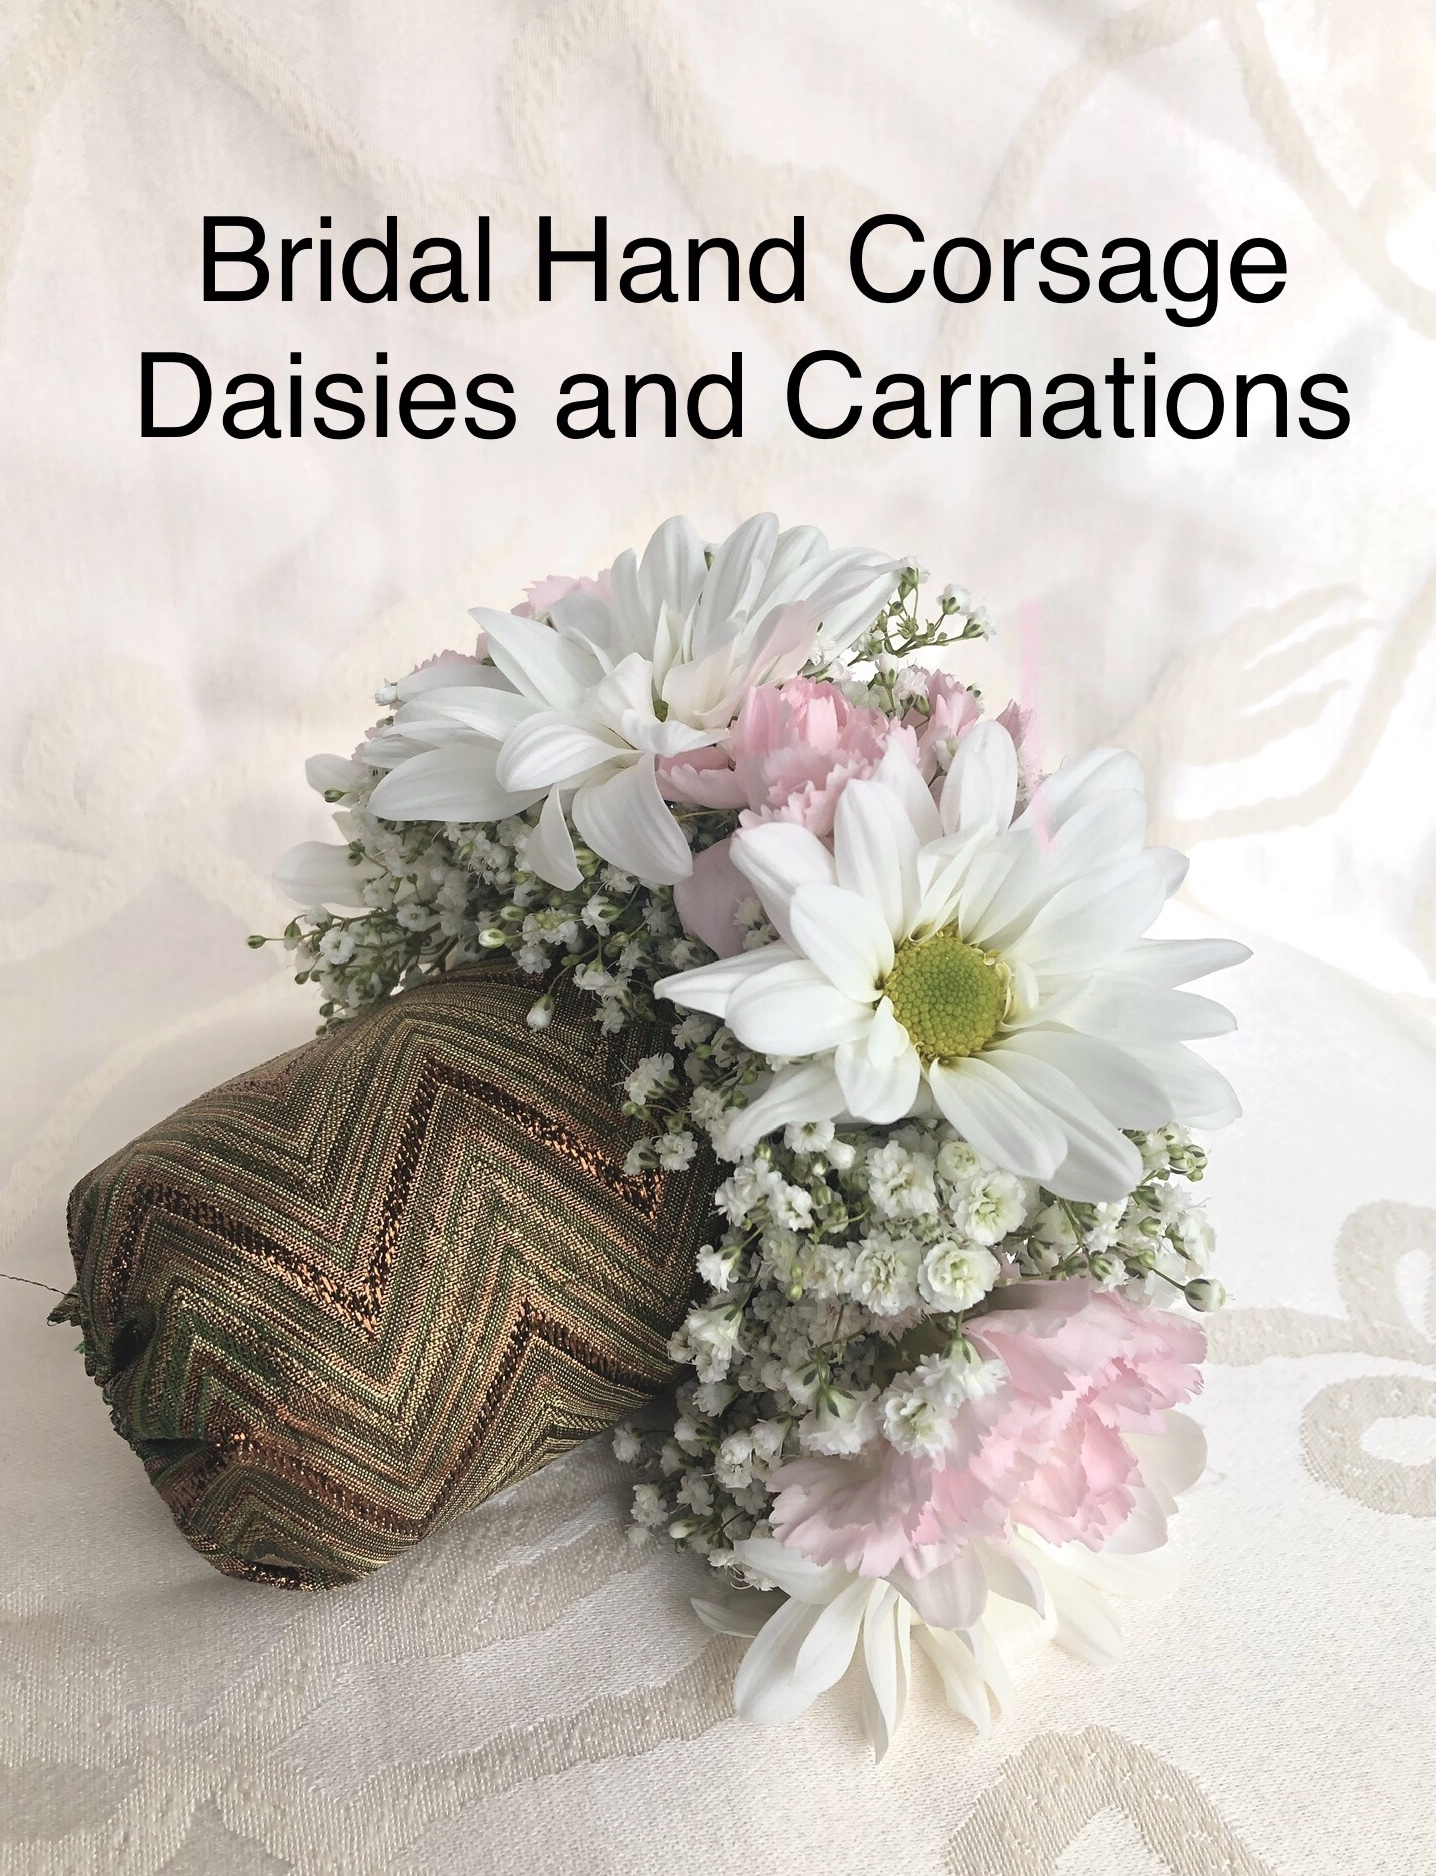 Bridal Hand Corsage Daisies and Carnations